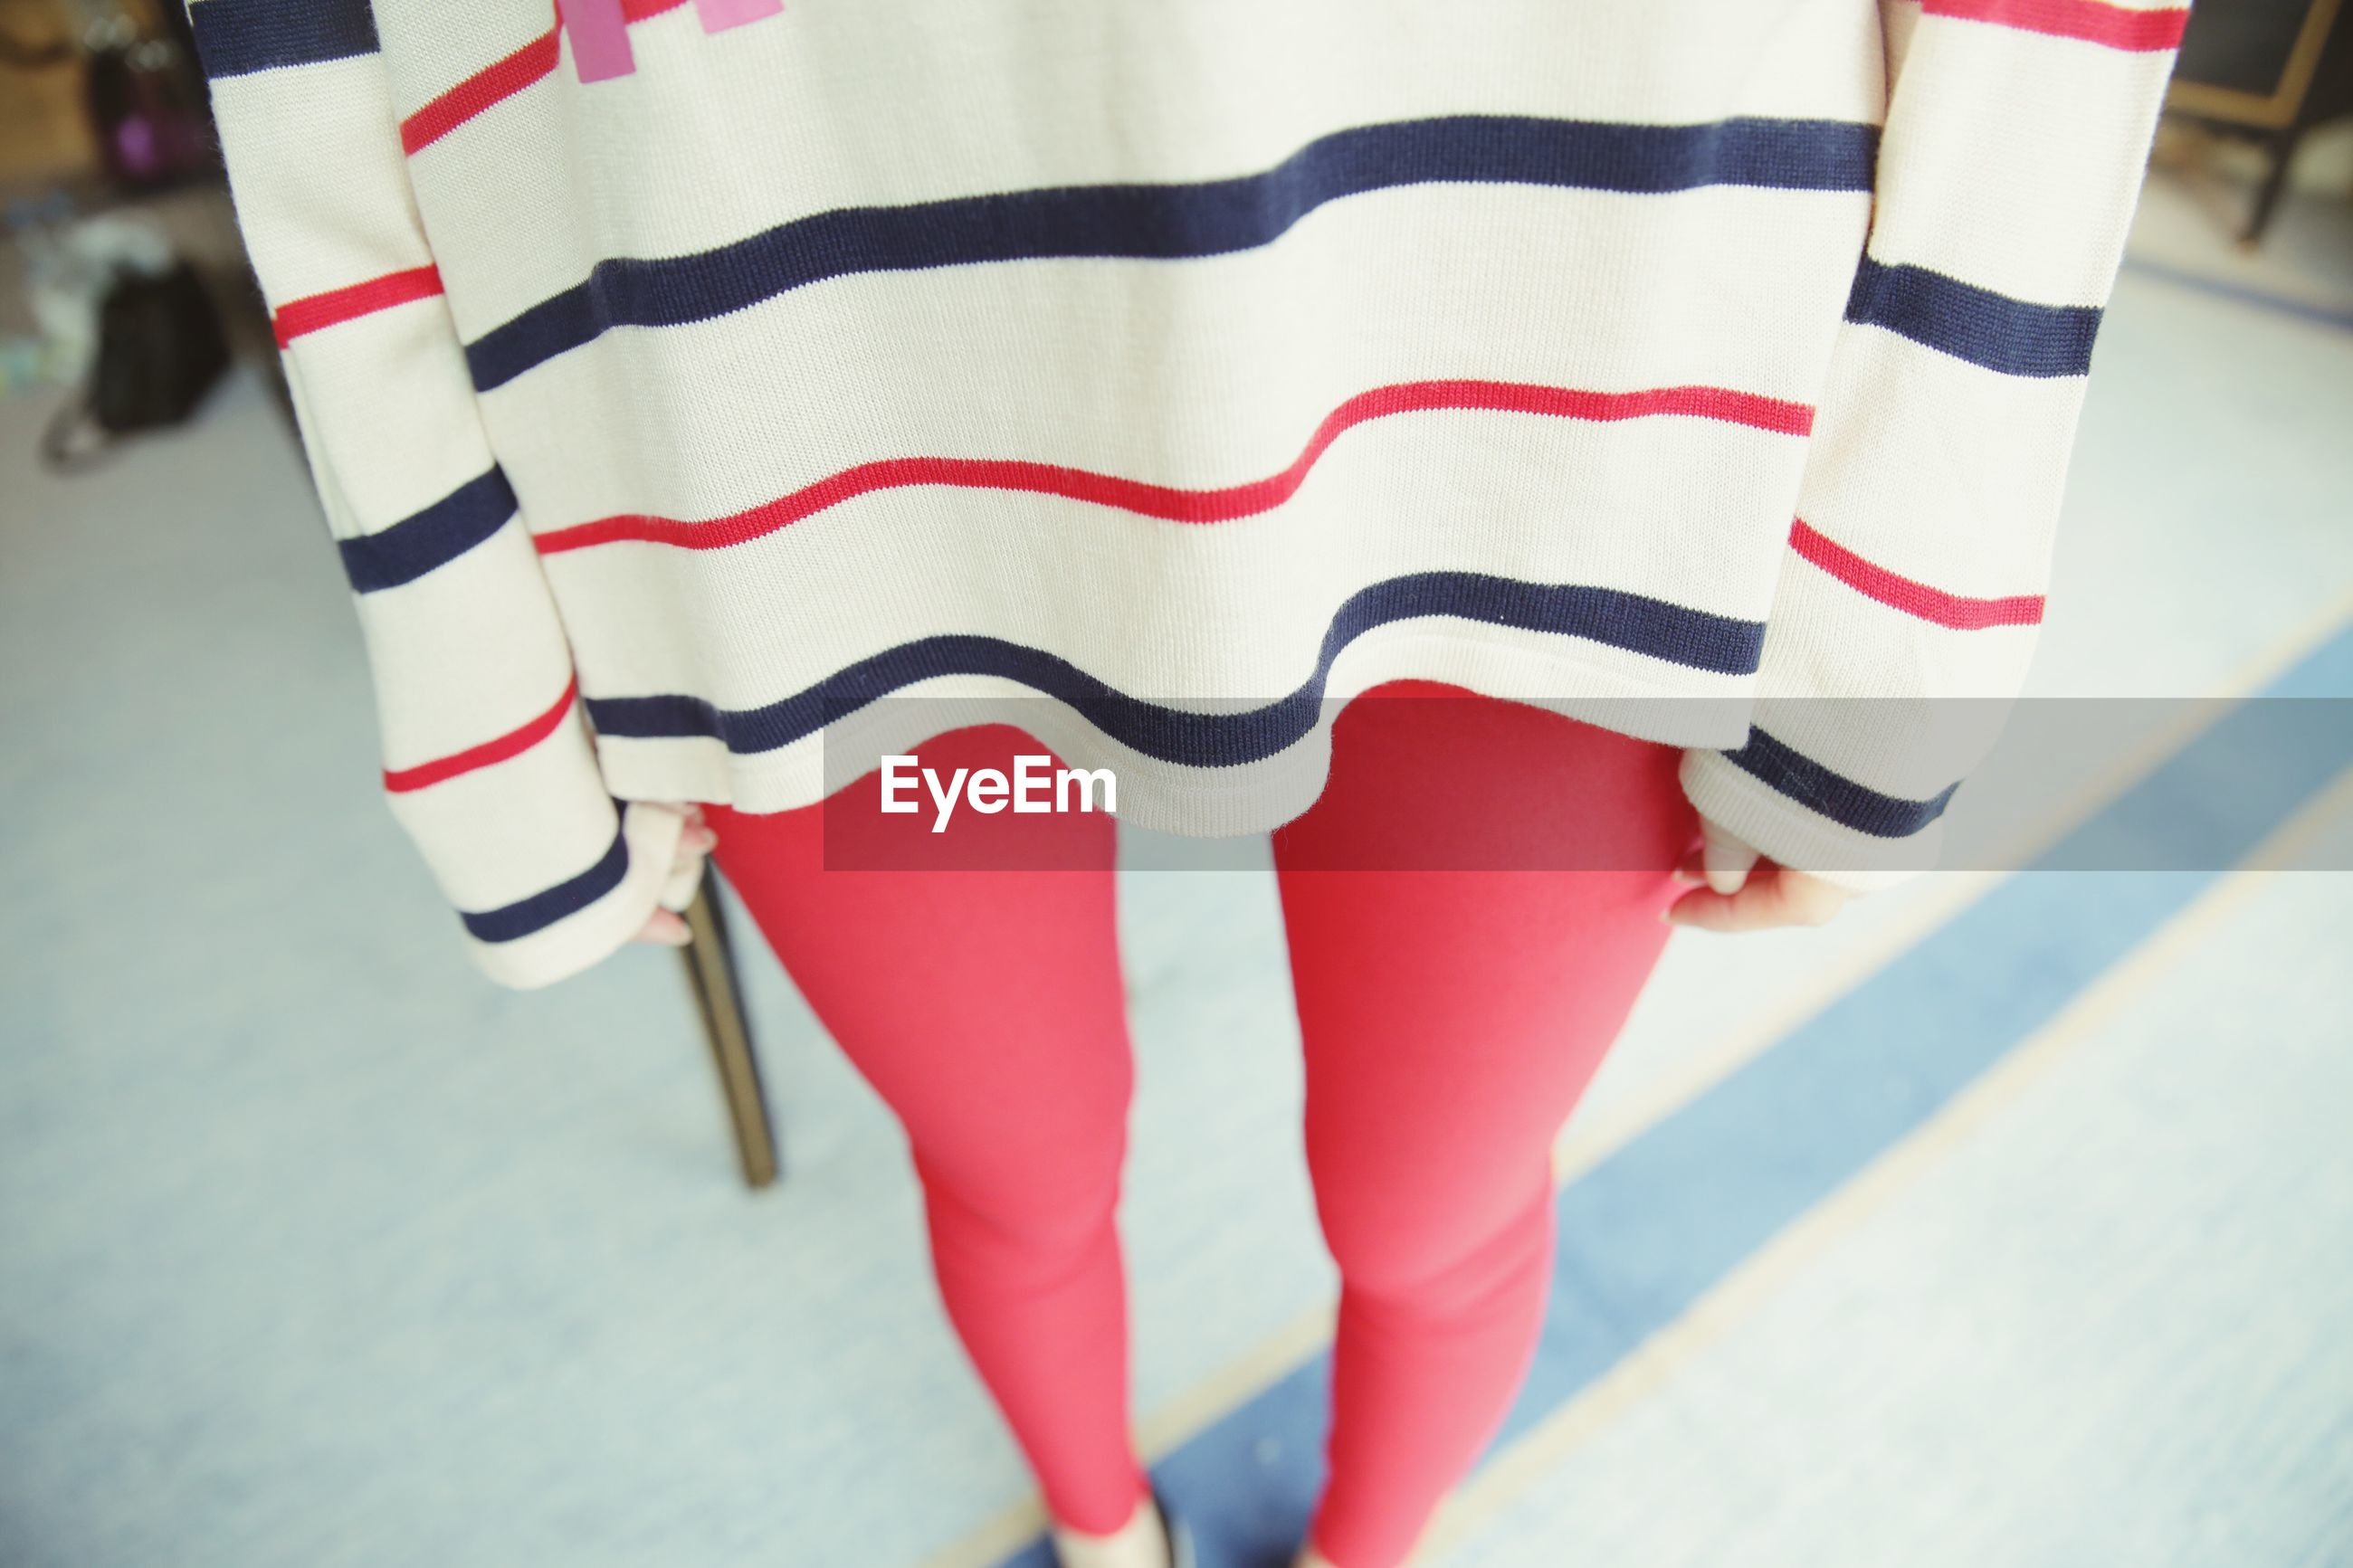 indoors, textile, red, clothing, fabric, low section, multi colored, striped, close-up, person, fashion, white color, pattern, focus on foreground, high angle view, sock, hanging